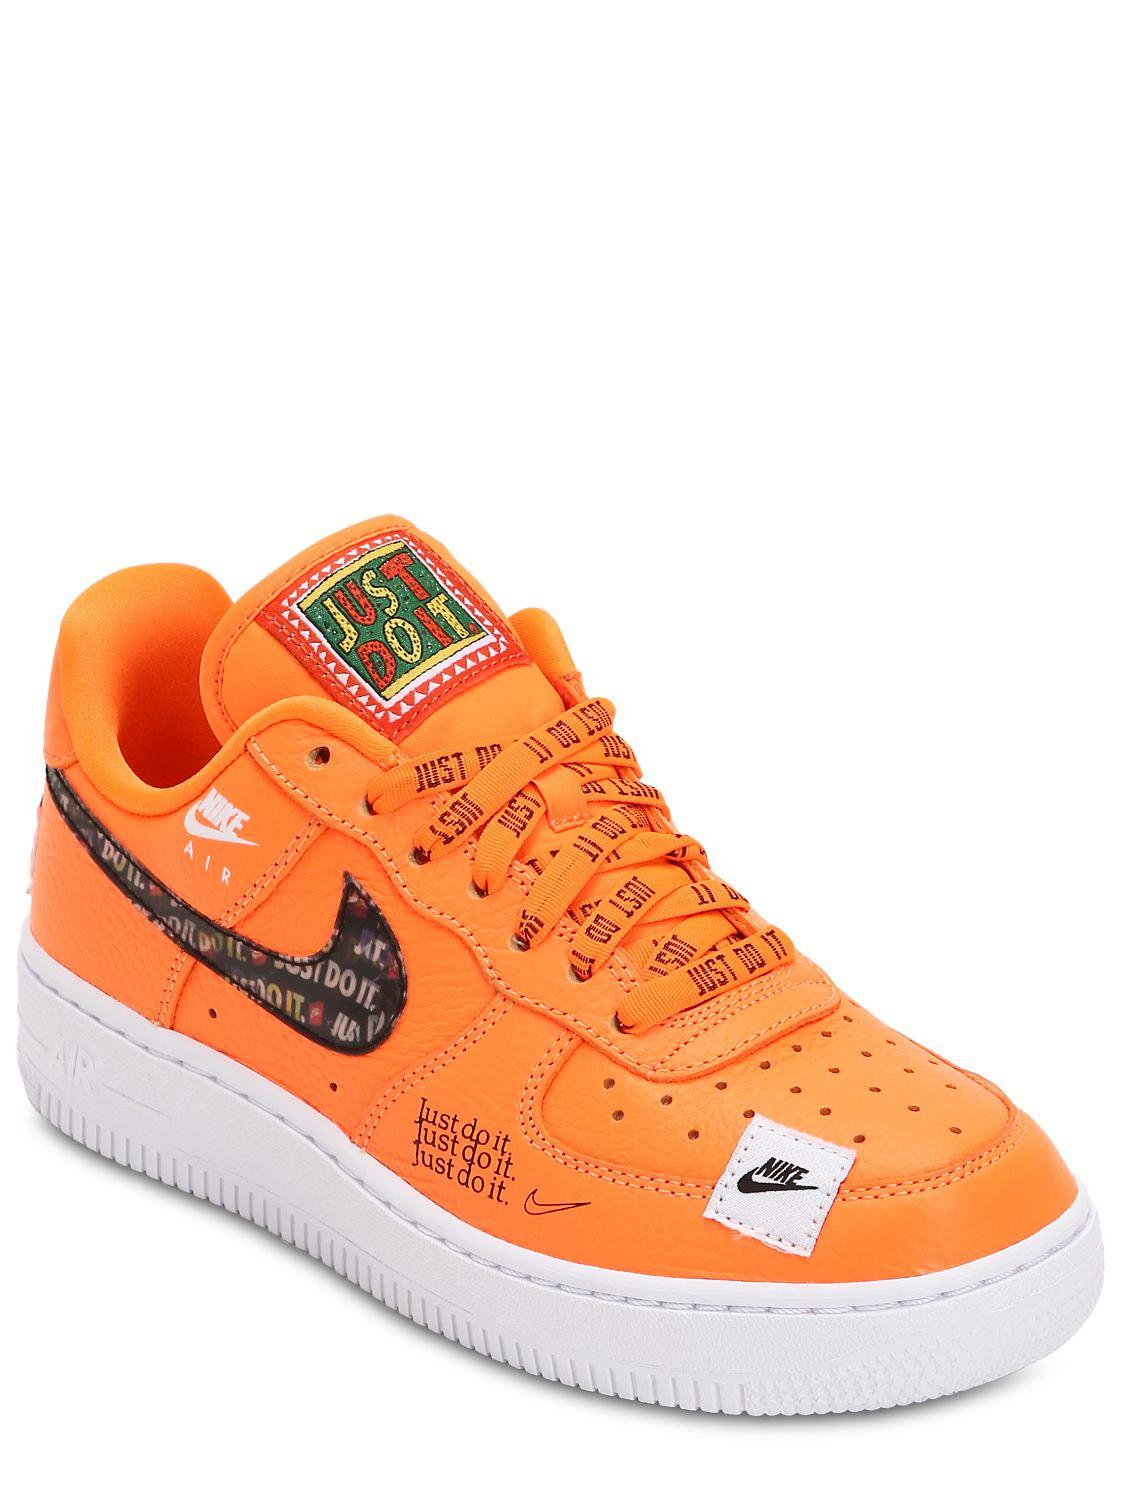 Nike Montante It Gris Just Vwnn0m8o Chaussures Do wkX80PNnO